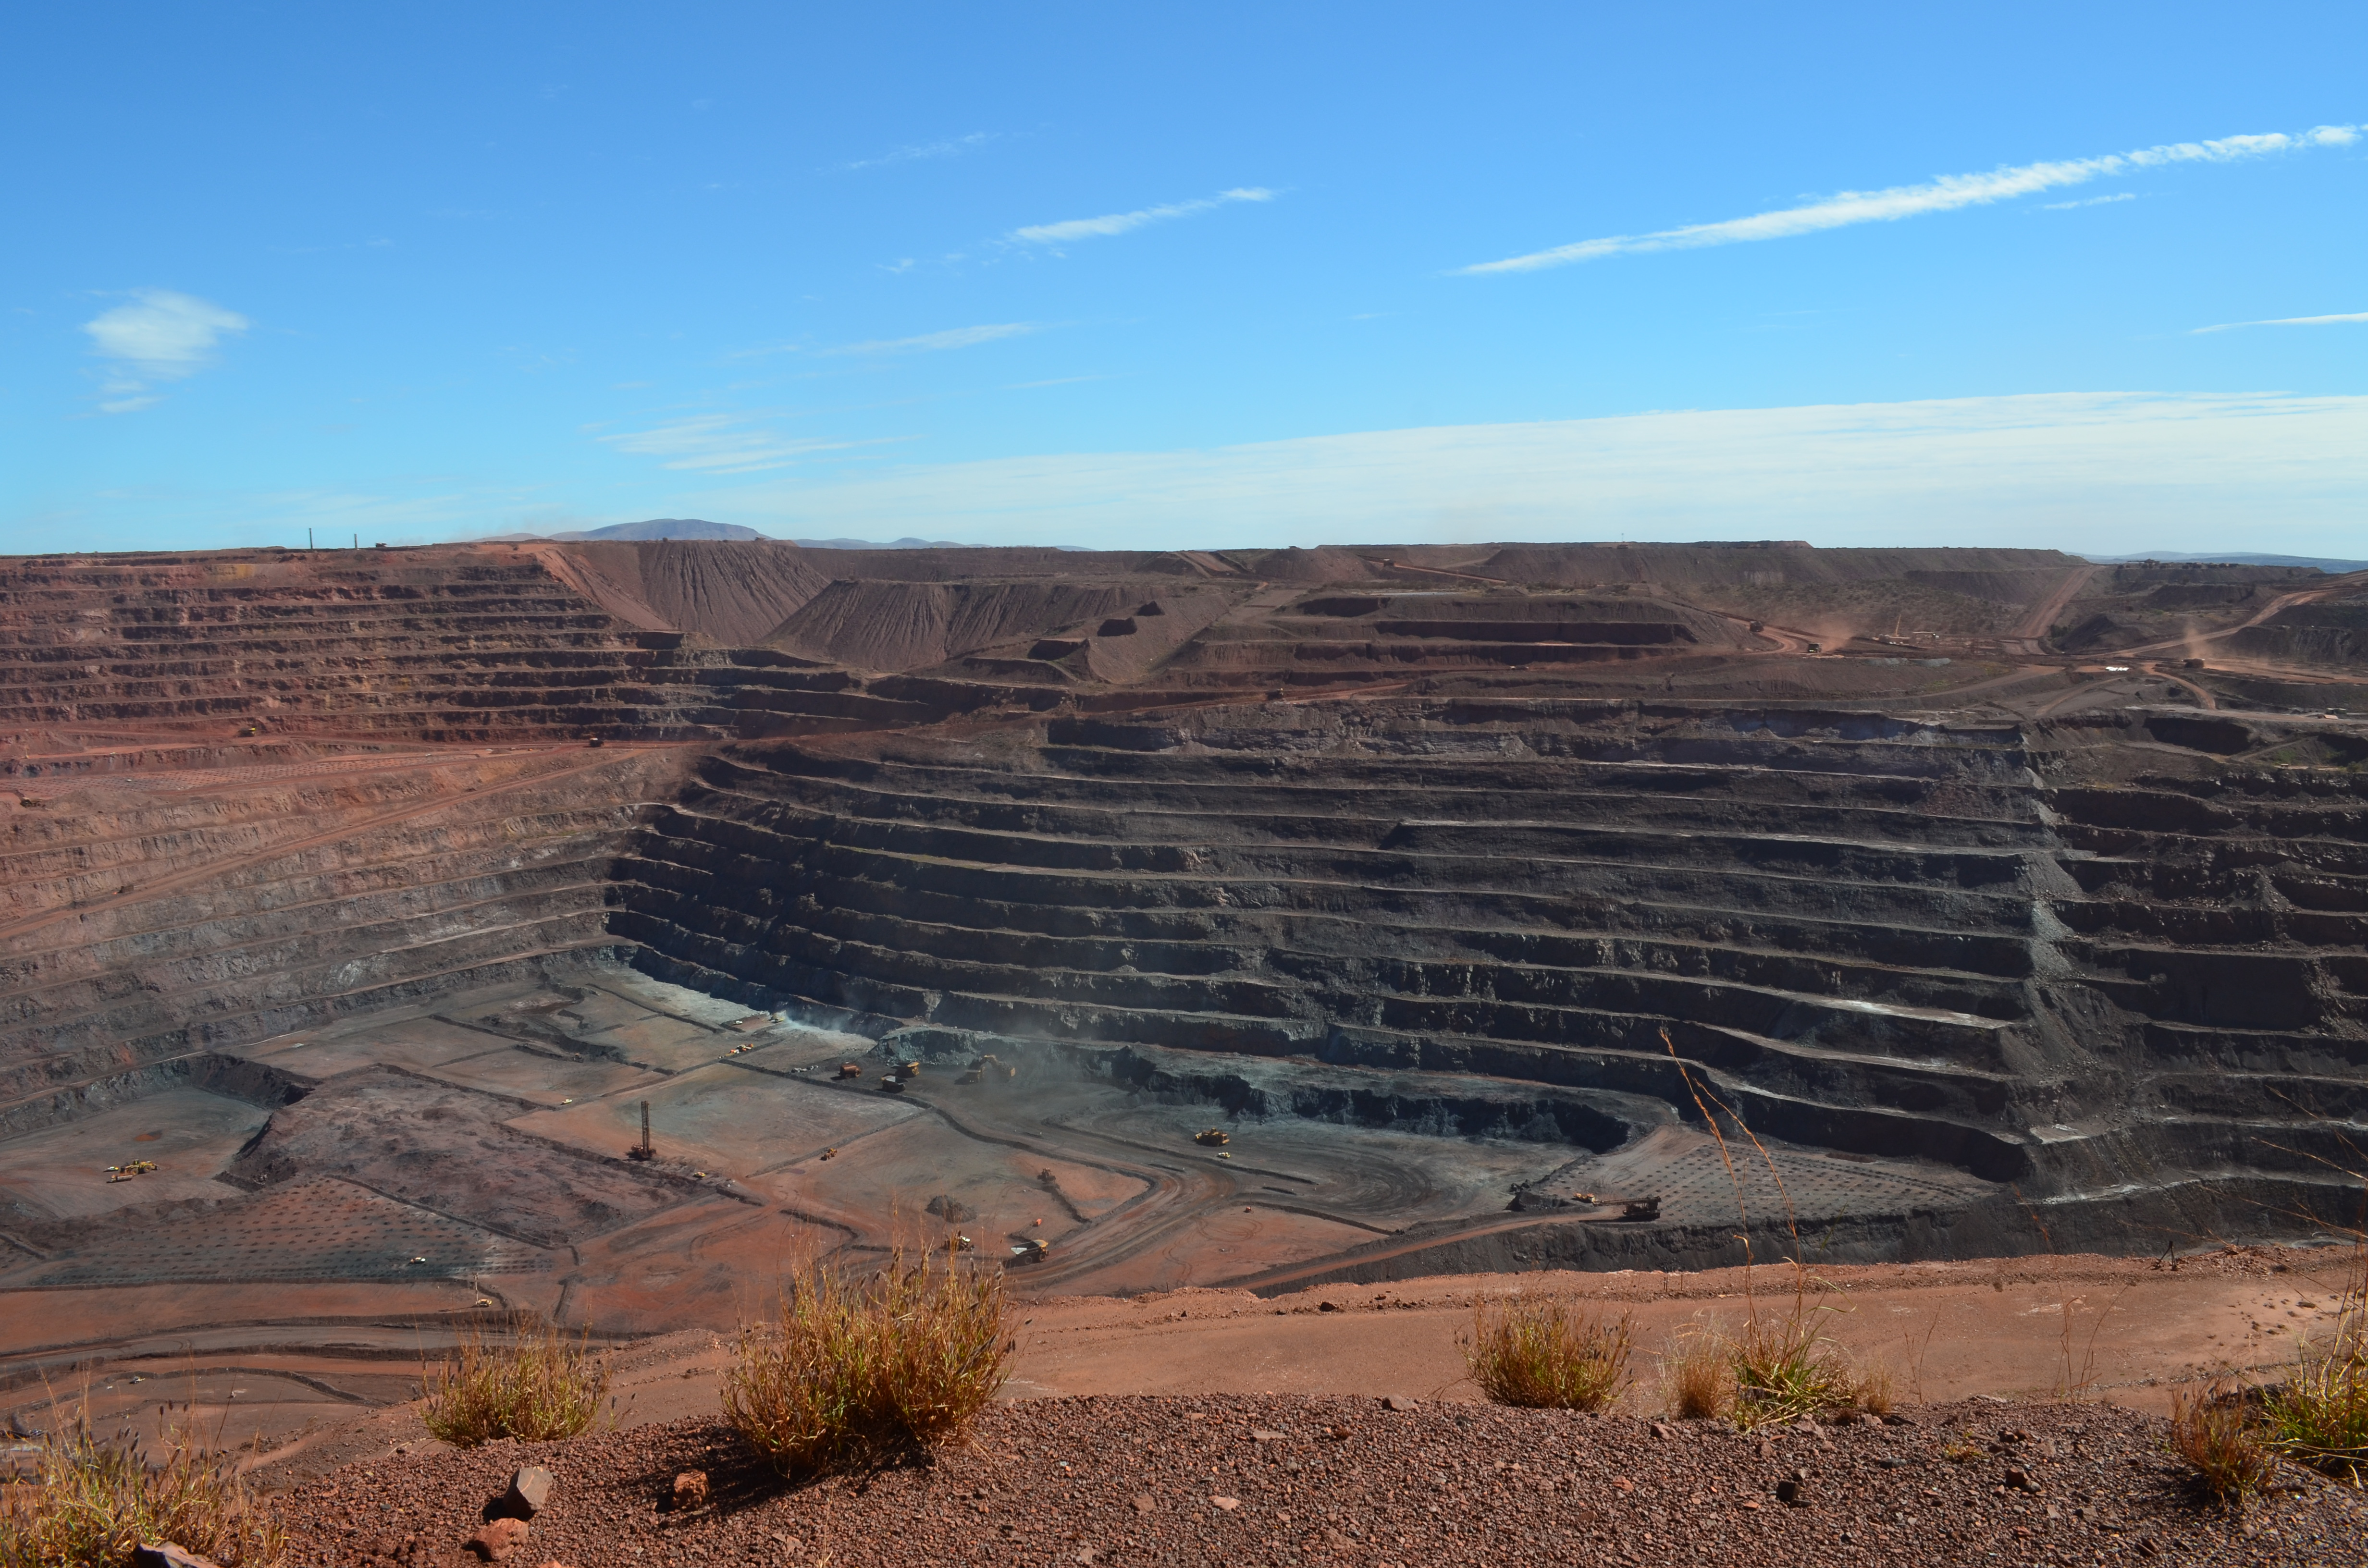 View across the open cut mine at Mount Whaleback.